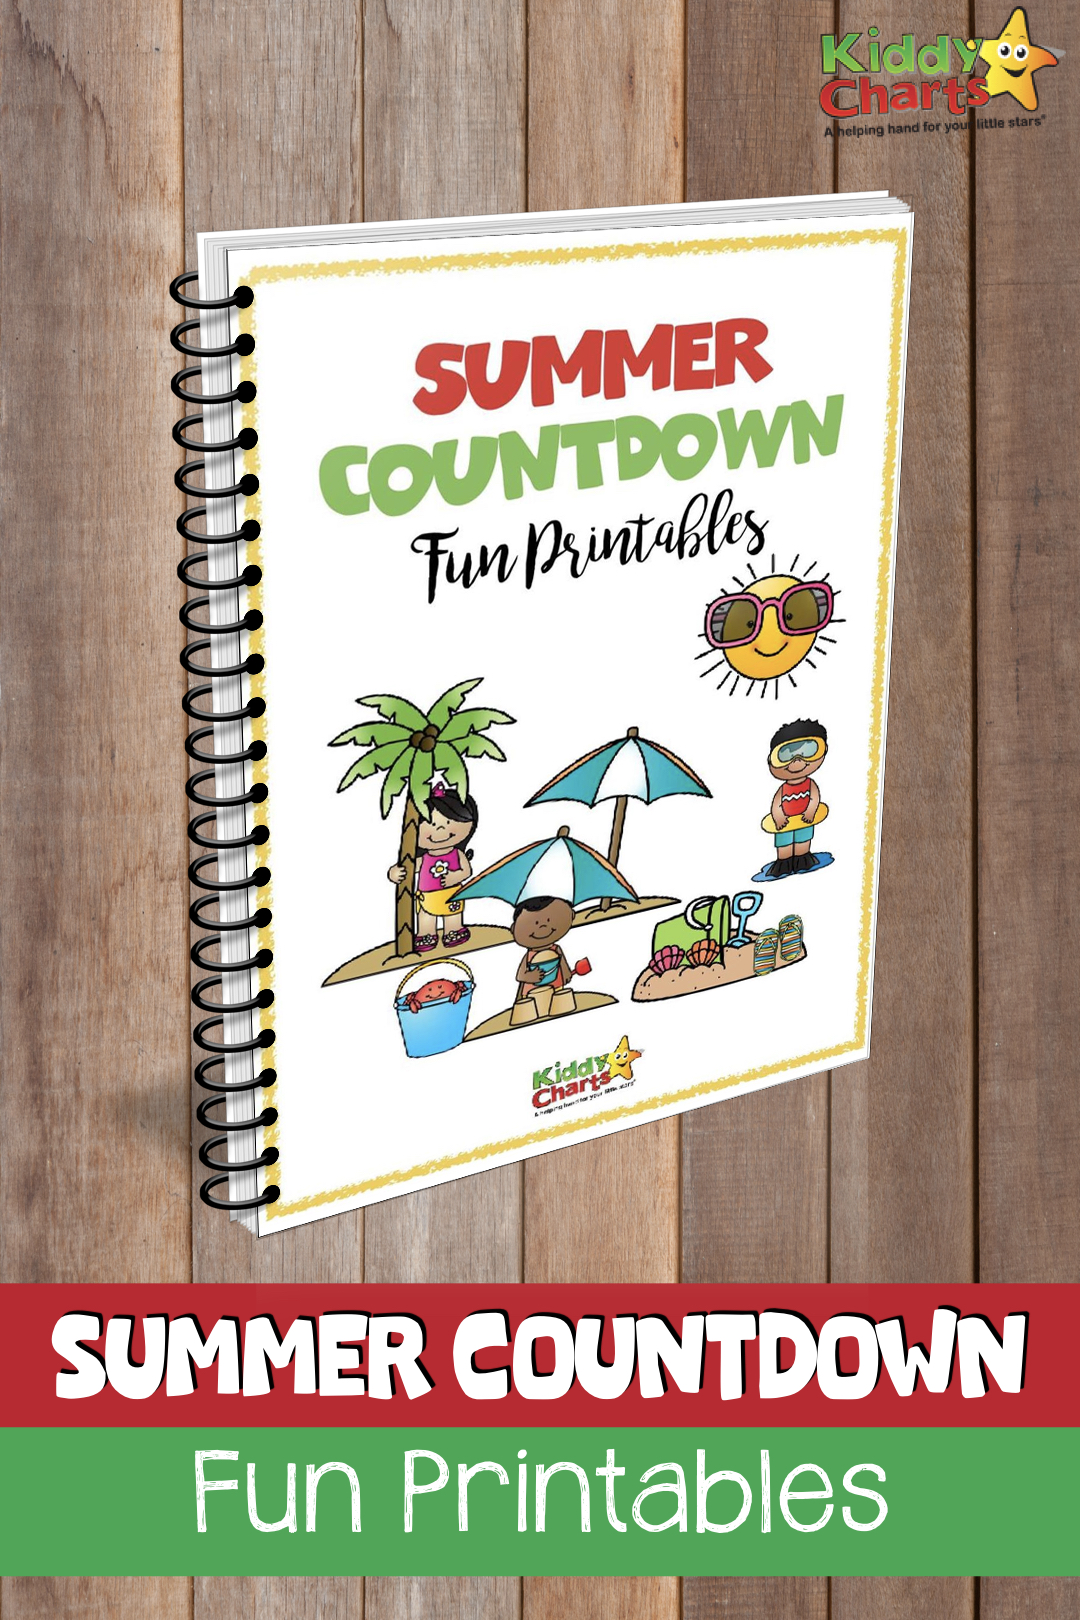 Summer activities eBook - completely free with 12 great activity sheets for the kids to have fun with anytime of year! #summer #kids #printables